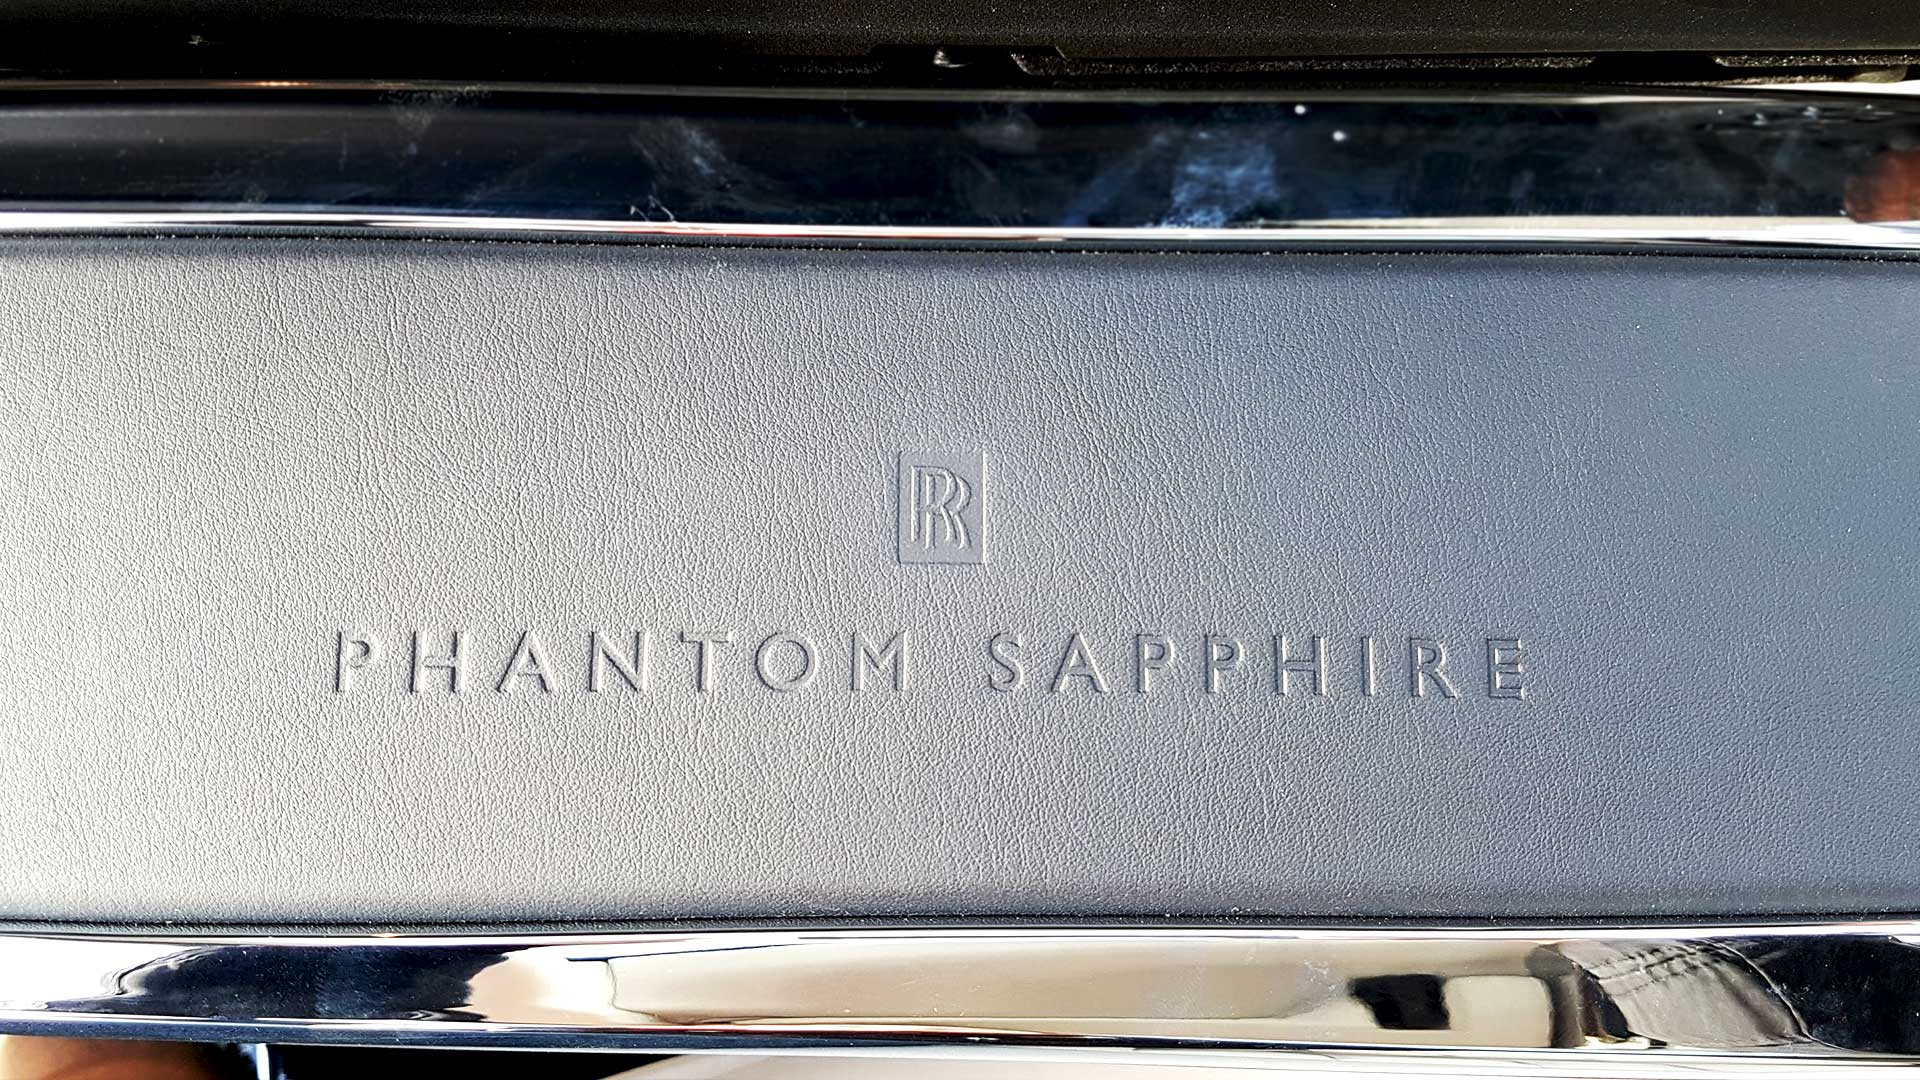 Special Edition Rolls-Royce Phantom Sapphire Embossed Leather